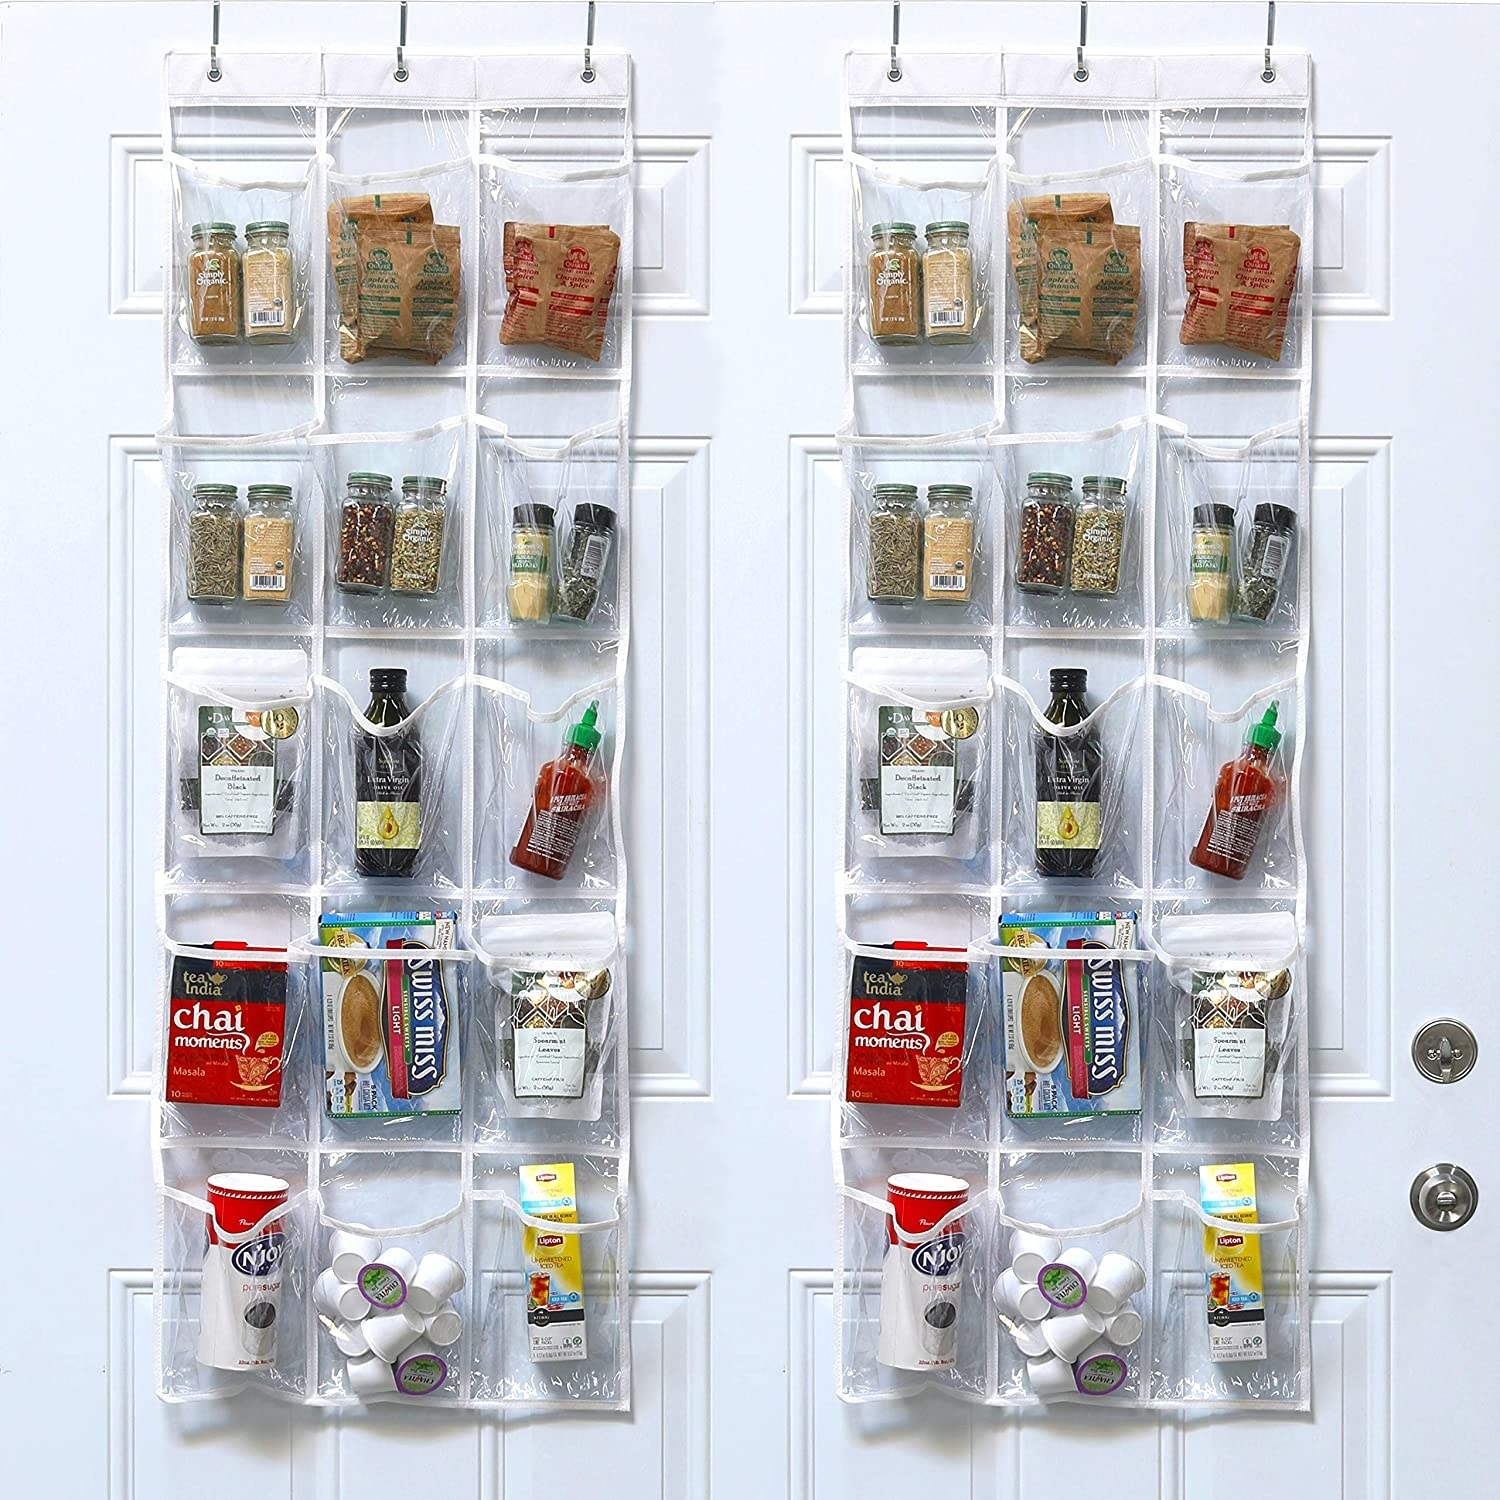 Spices and kitchen products hand over a door